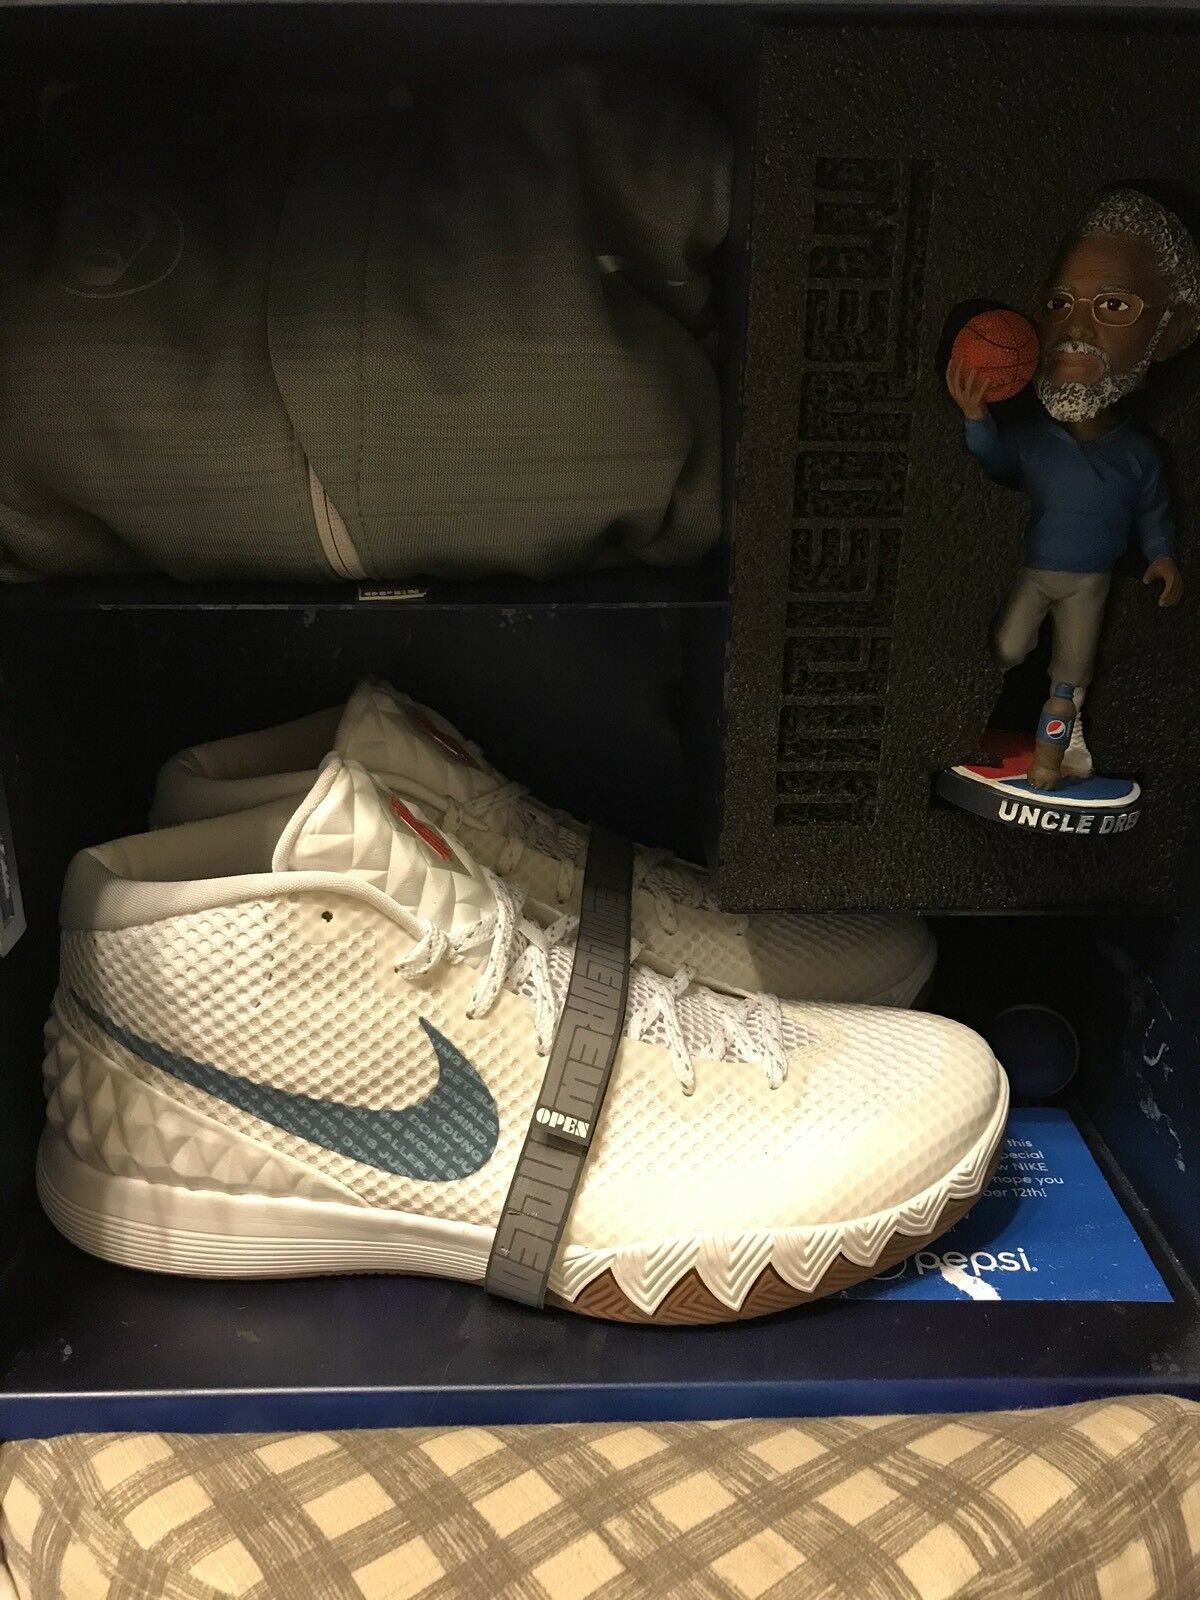 Uncle Drew Kyrie 1 Nike W/ Locker Friends & Family Pepsi Collectible Size 13 F&F